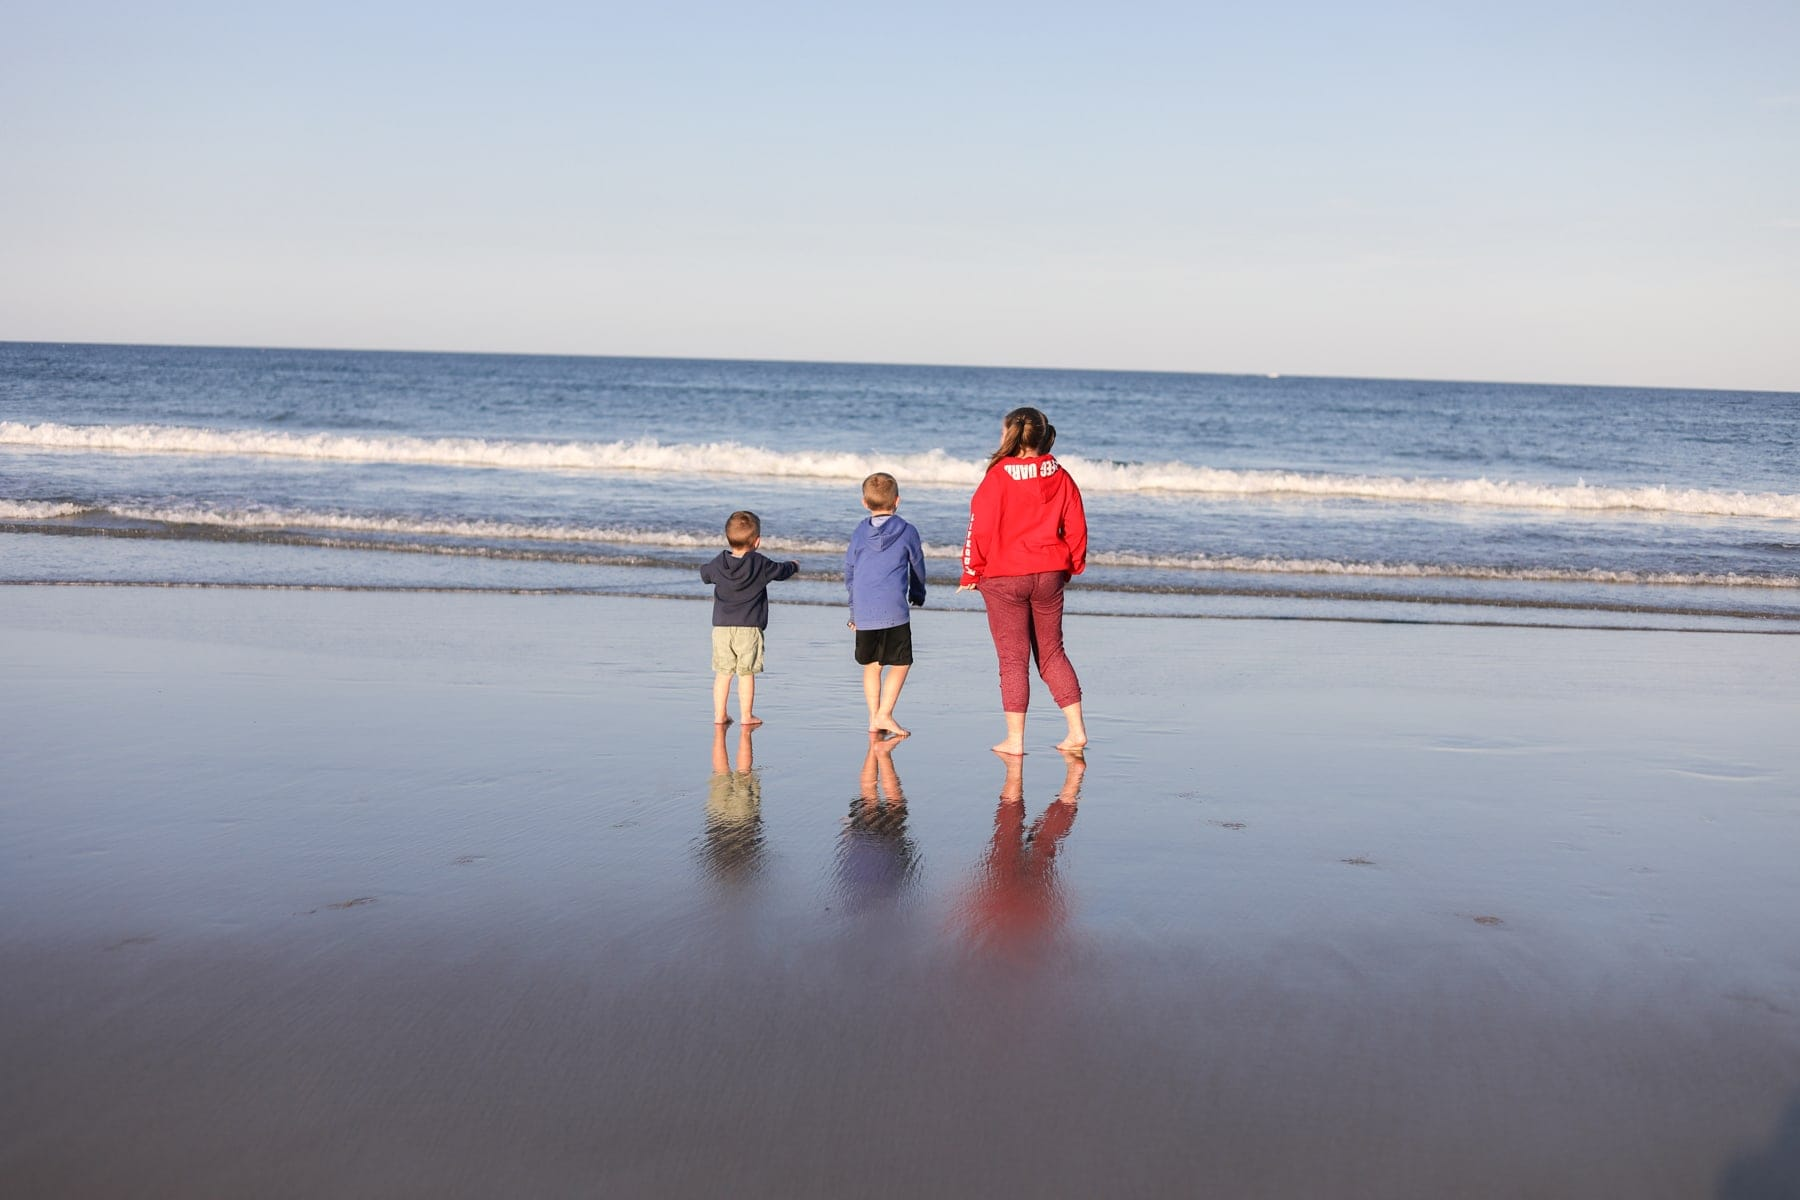 The kids looking out into the ocean